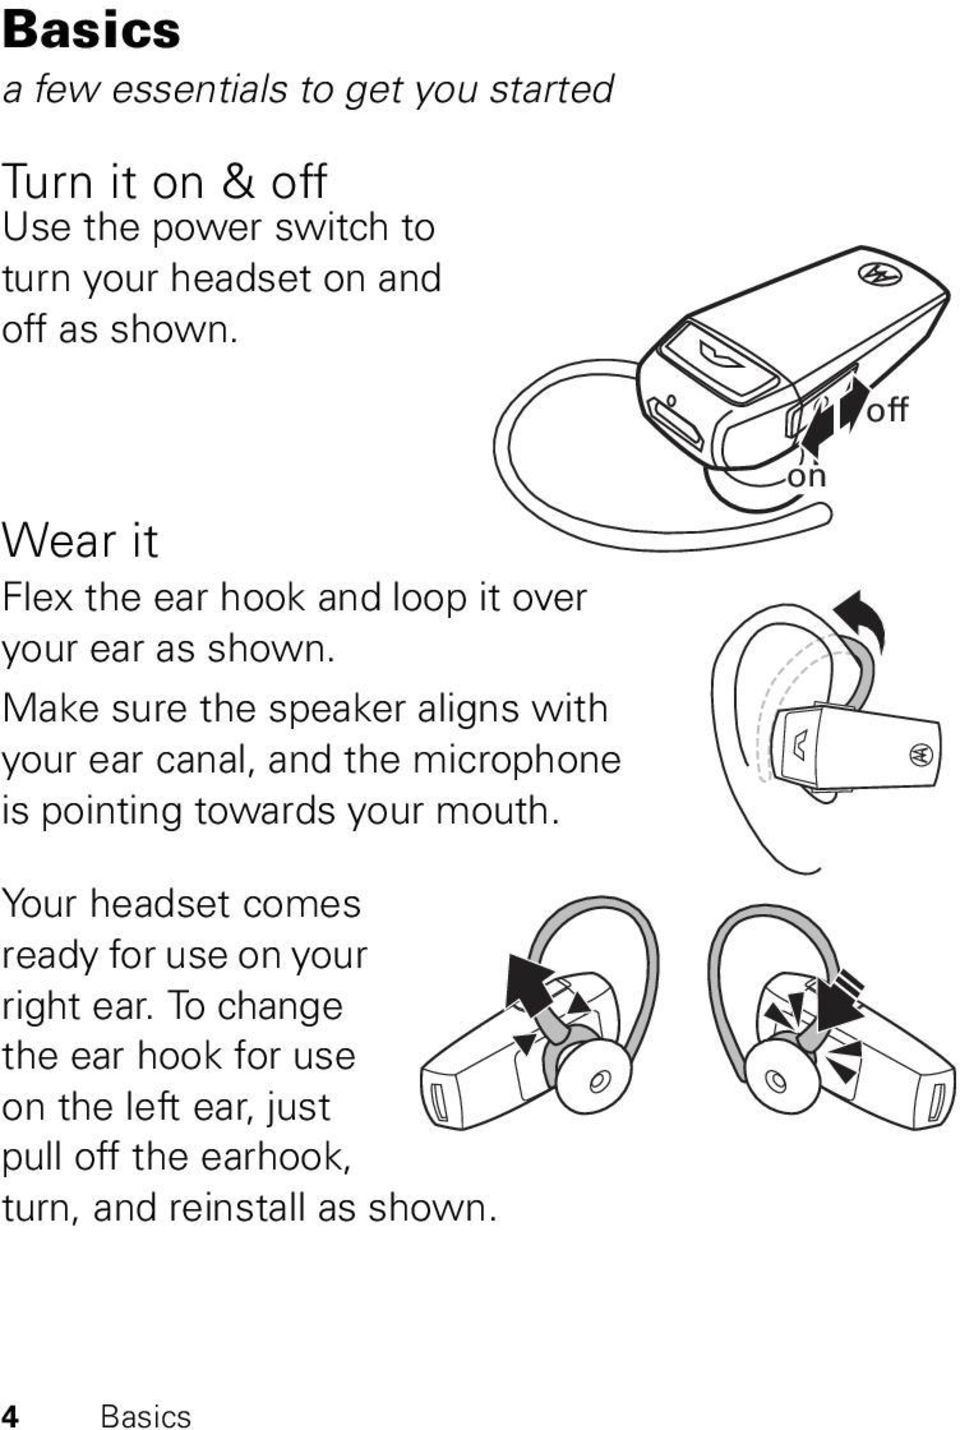 Make sure the speaker aligns with your ear canal, and the microphone is pointing towards your mouth.